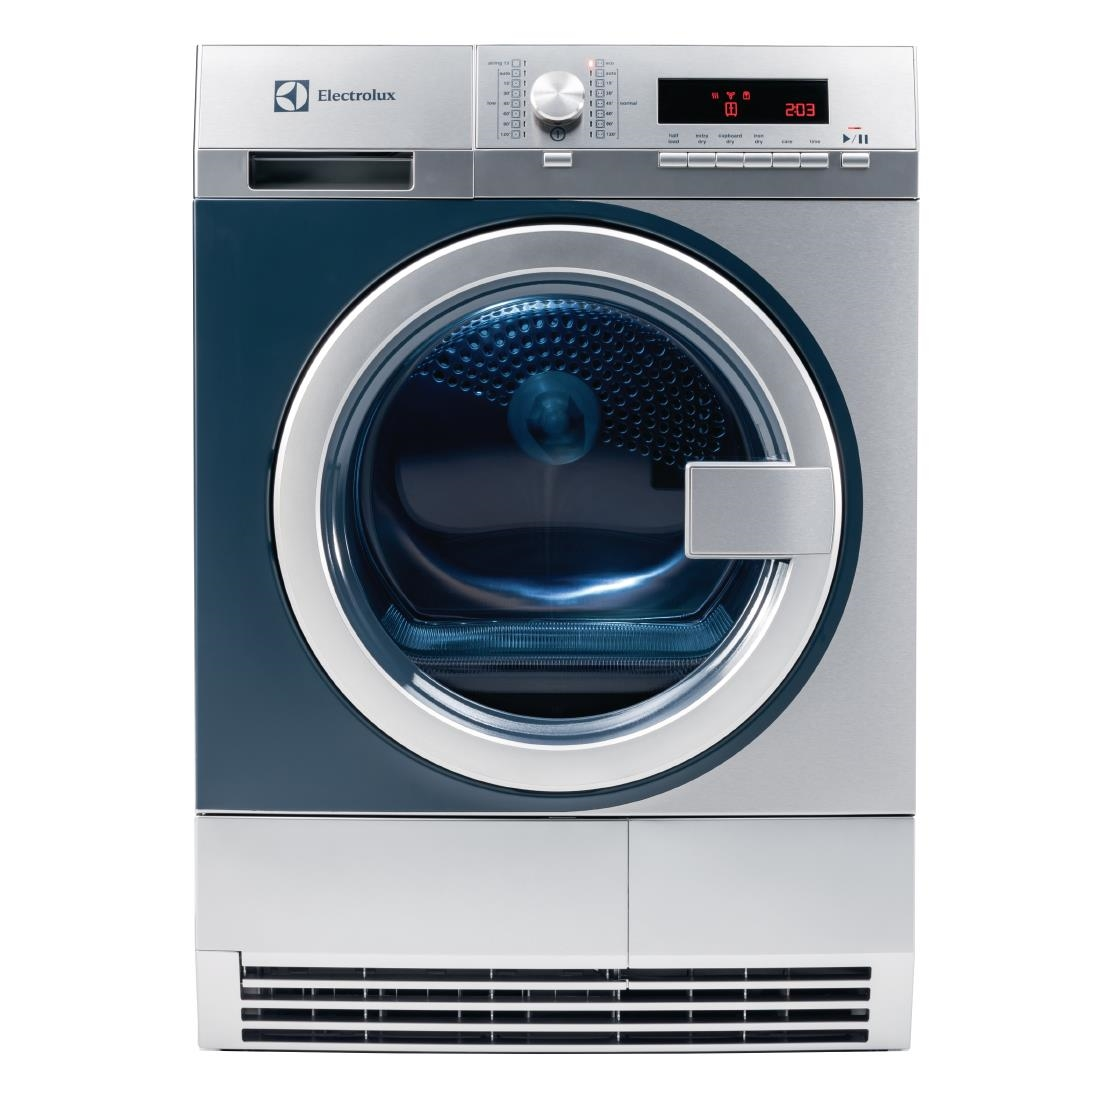 Image of Electrolux myPRO Commercial Tumble Dryer TE1120